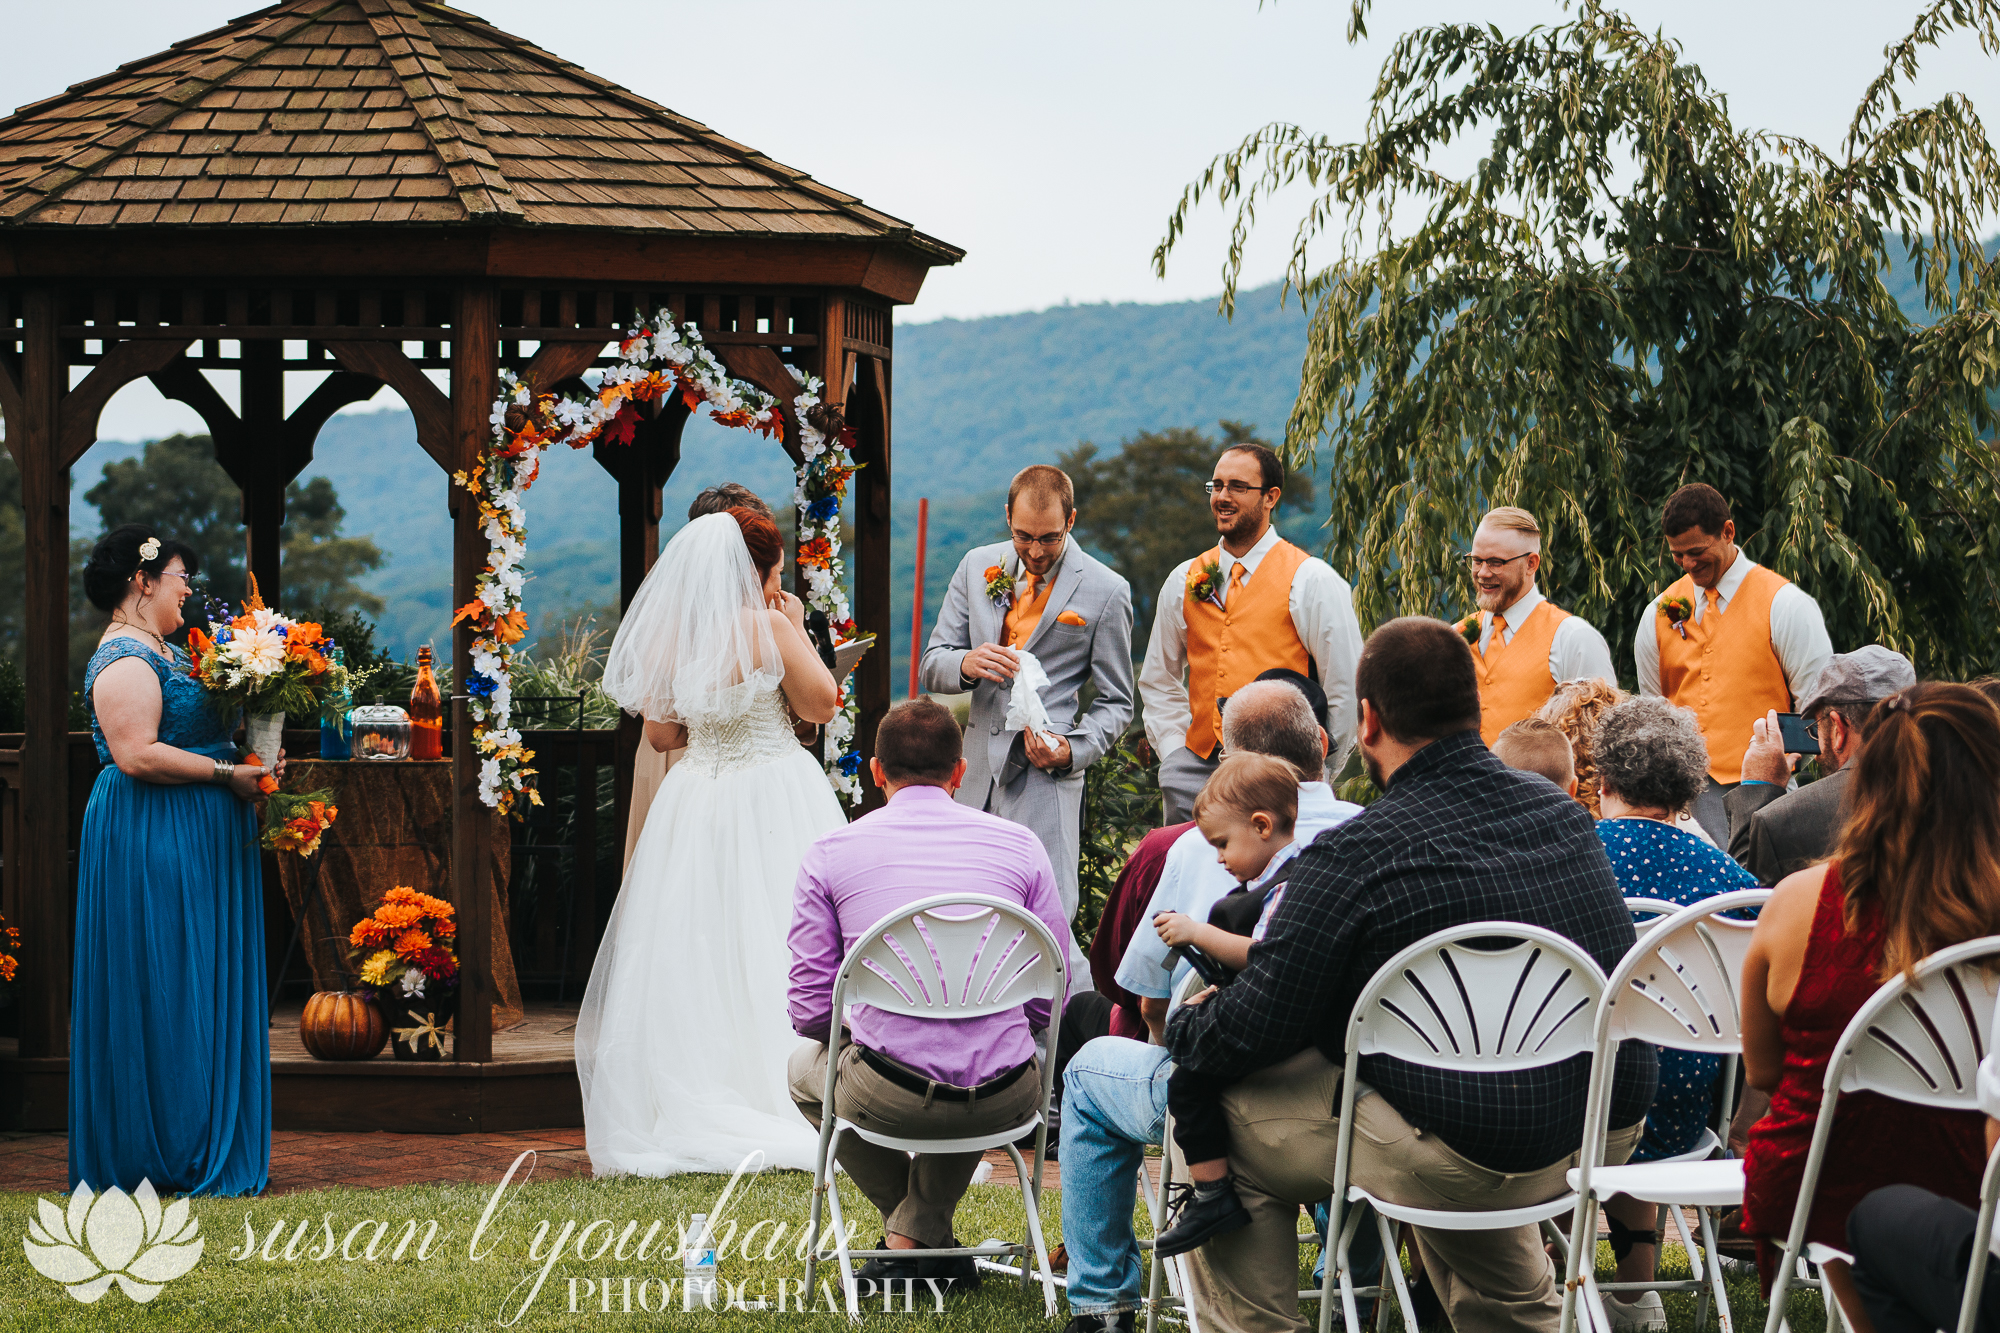 BLOG Kelly and DJ Roberts 08-25-2018 SLY Photography LLC-15.jpg